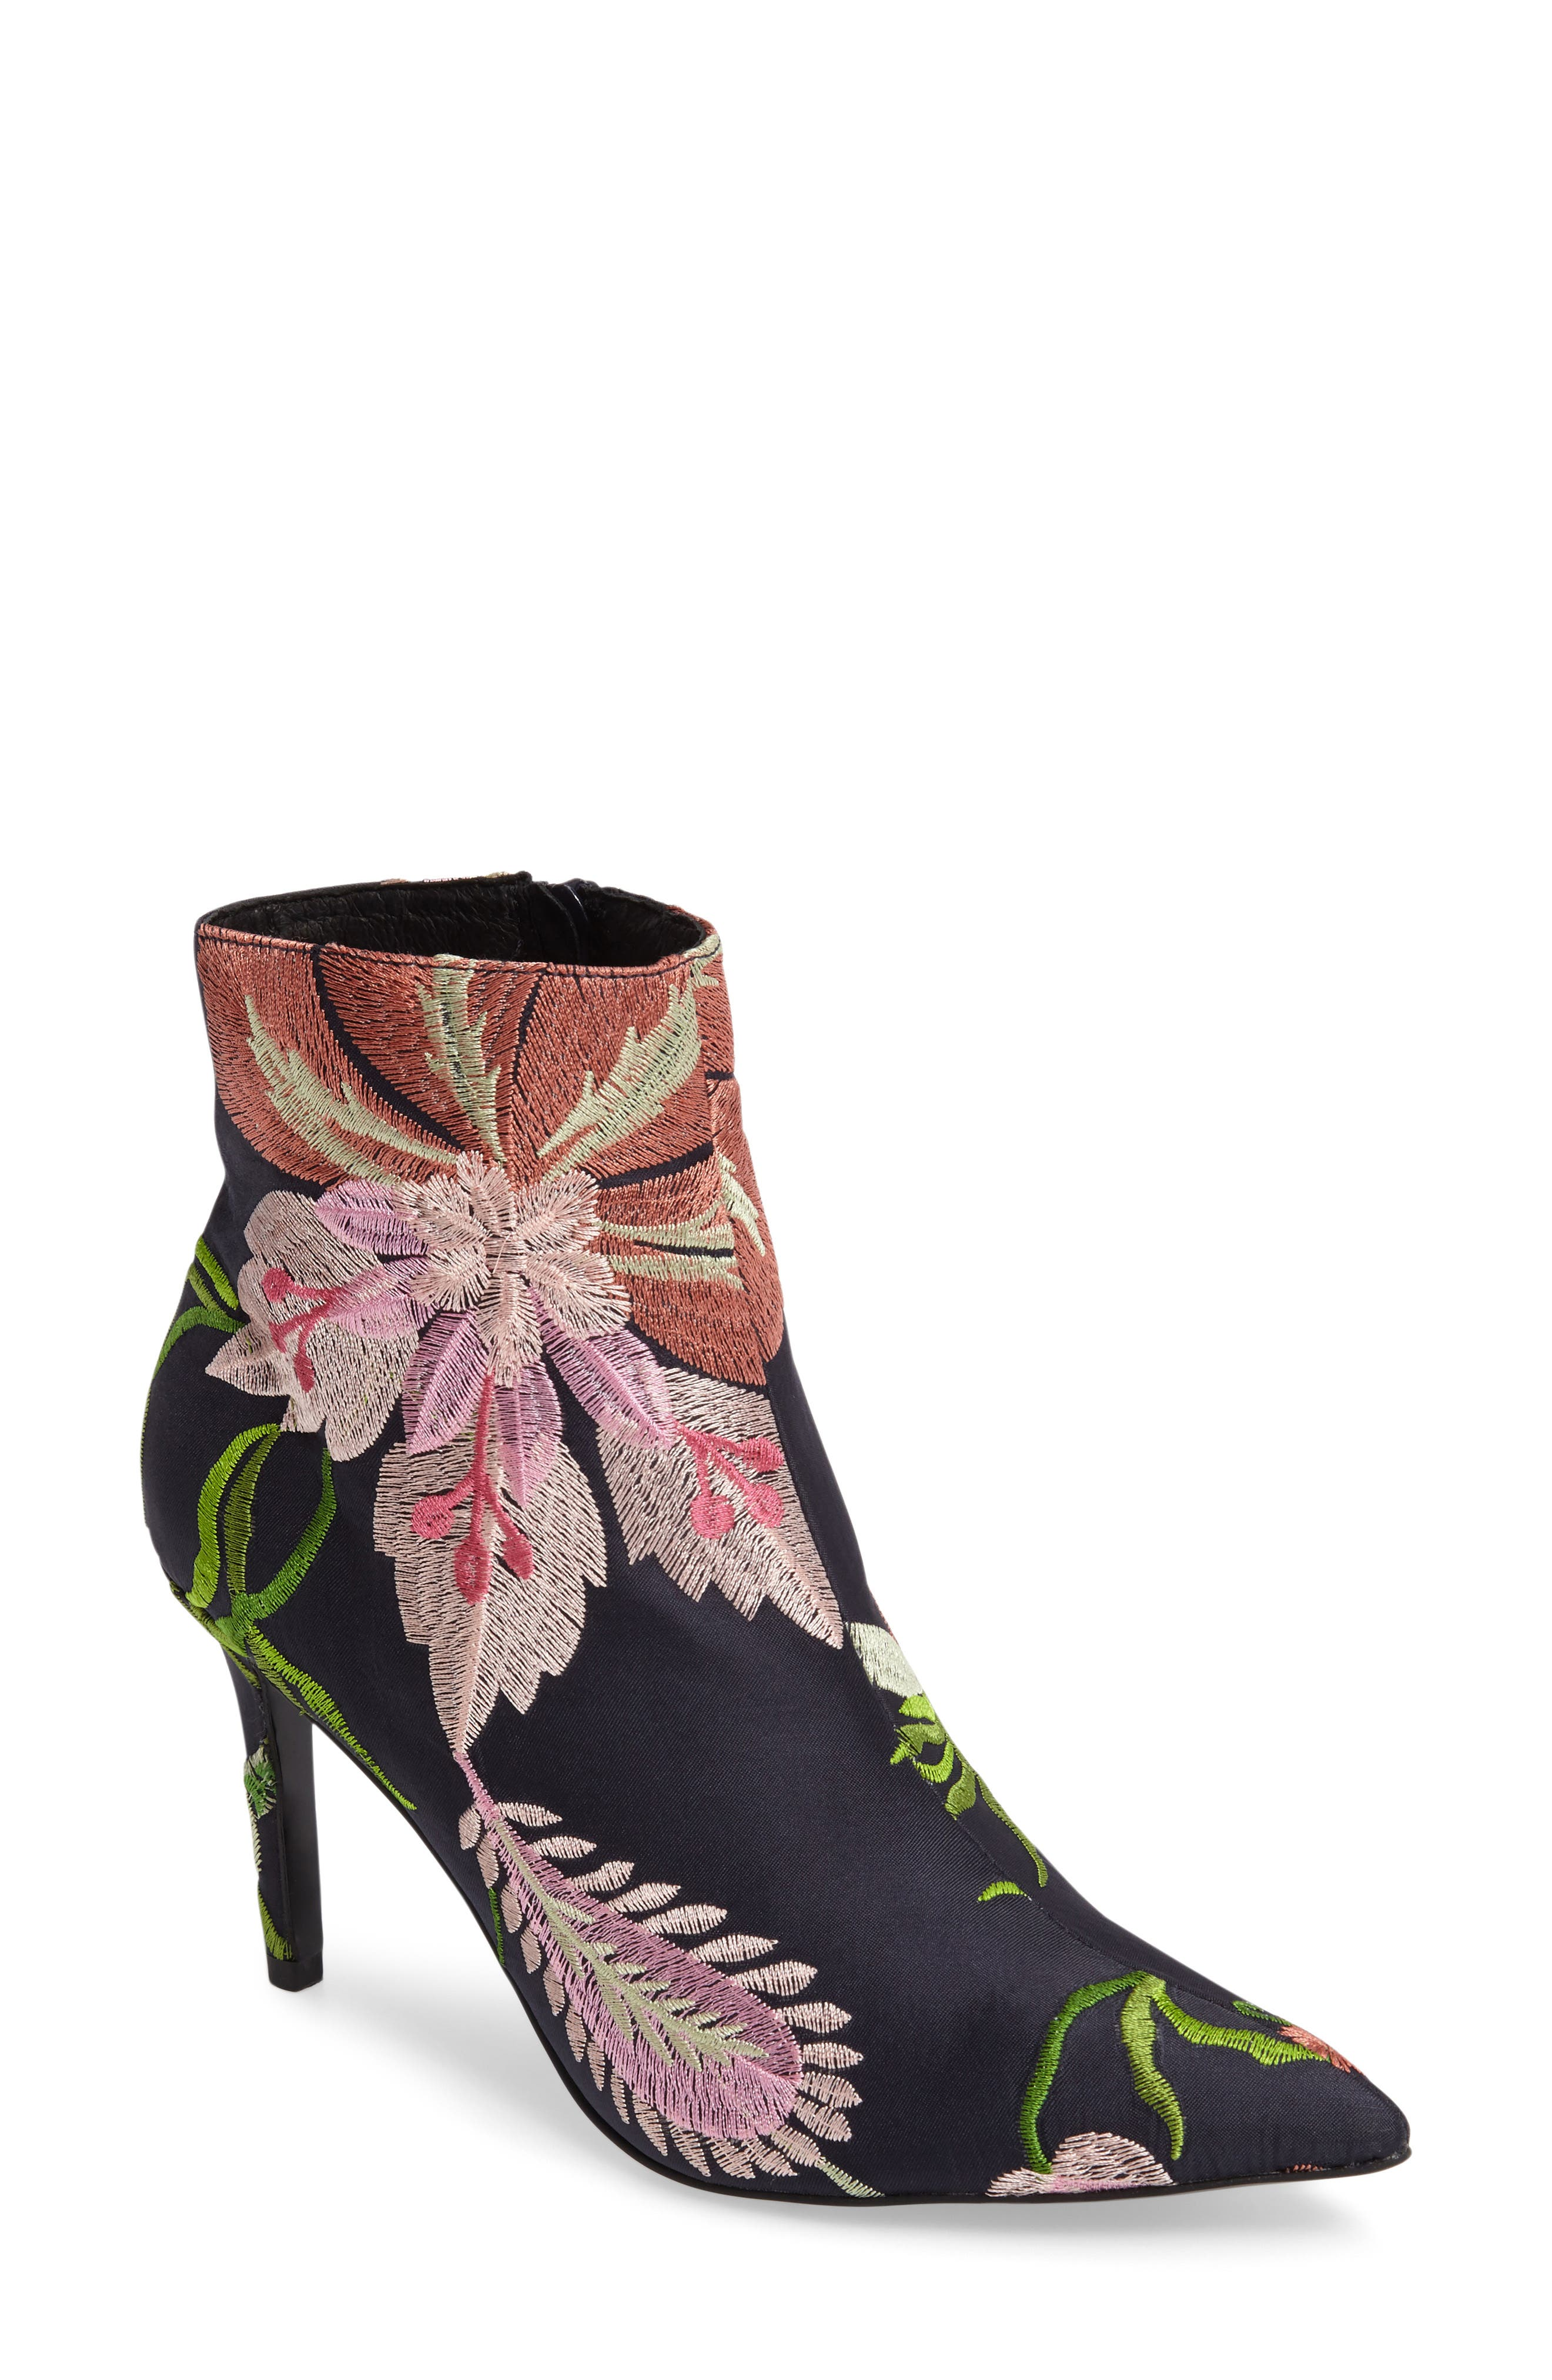 Mimosa Pointy Toe Bootie,                             Main thumbnail 1, color,                             002